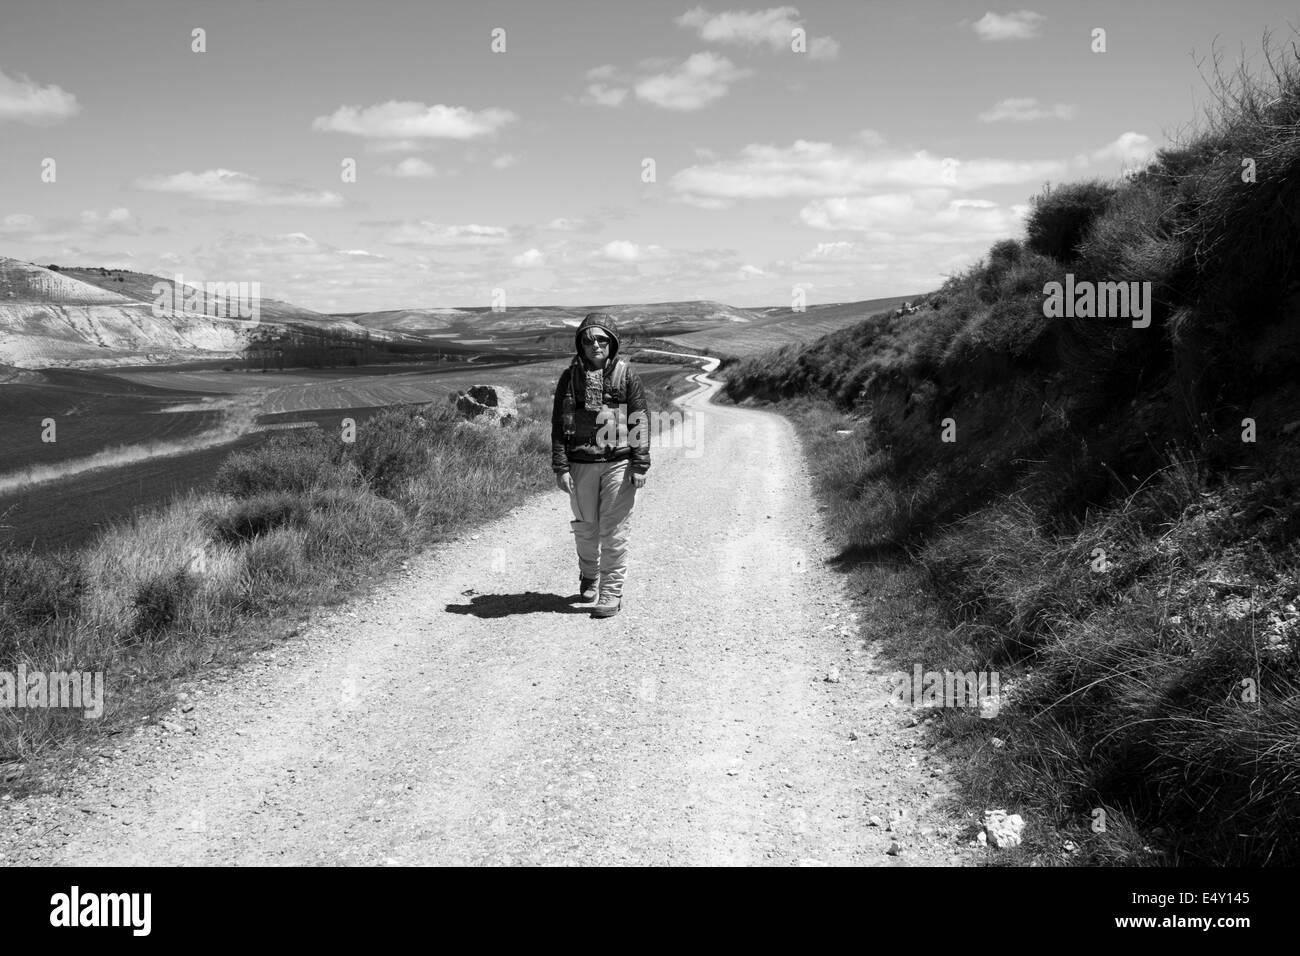 On the way to Sam Bol on the great walk of  Saint James, Jakobsweg, Camino de Santiago, Spain, Black and white Stock Photo